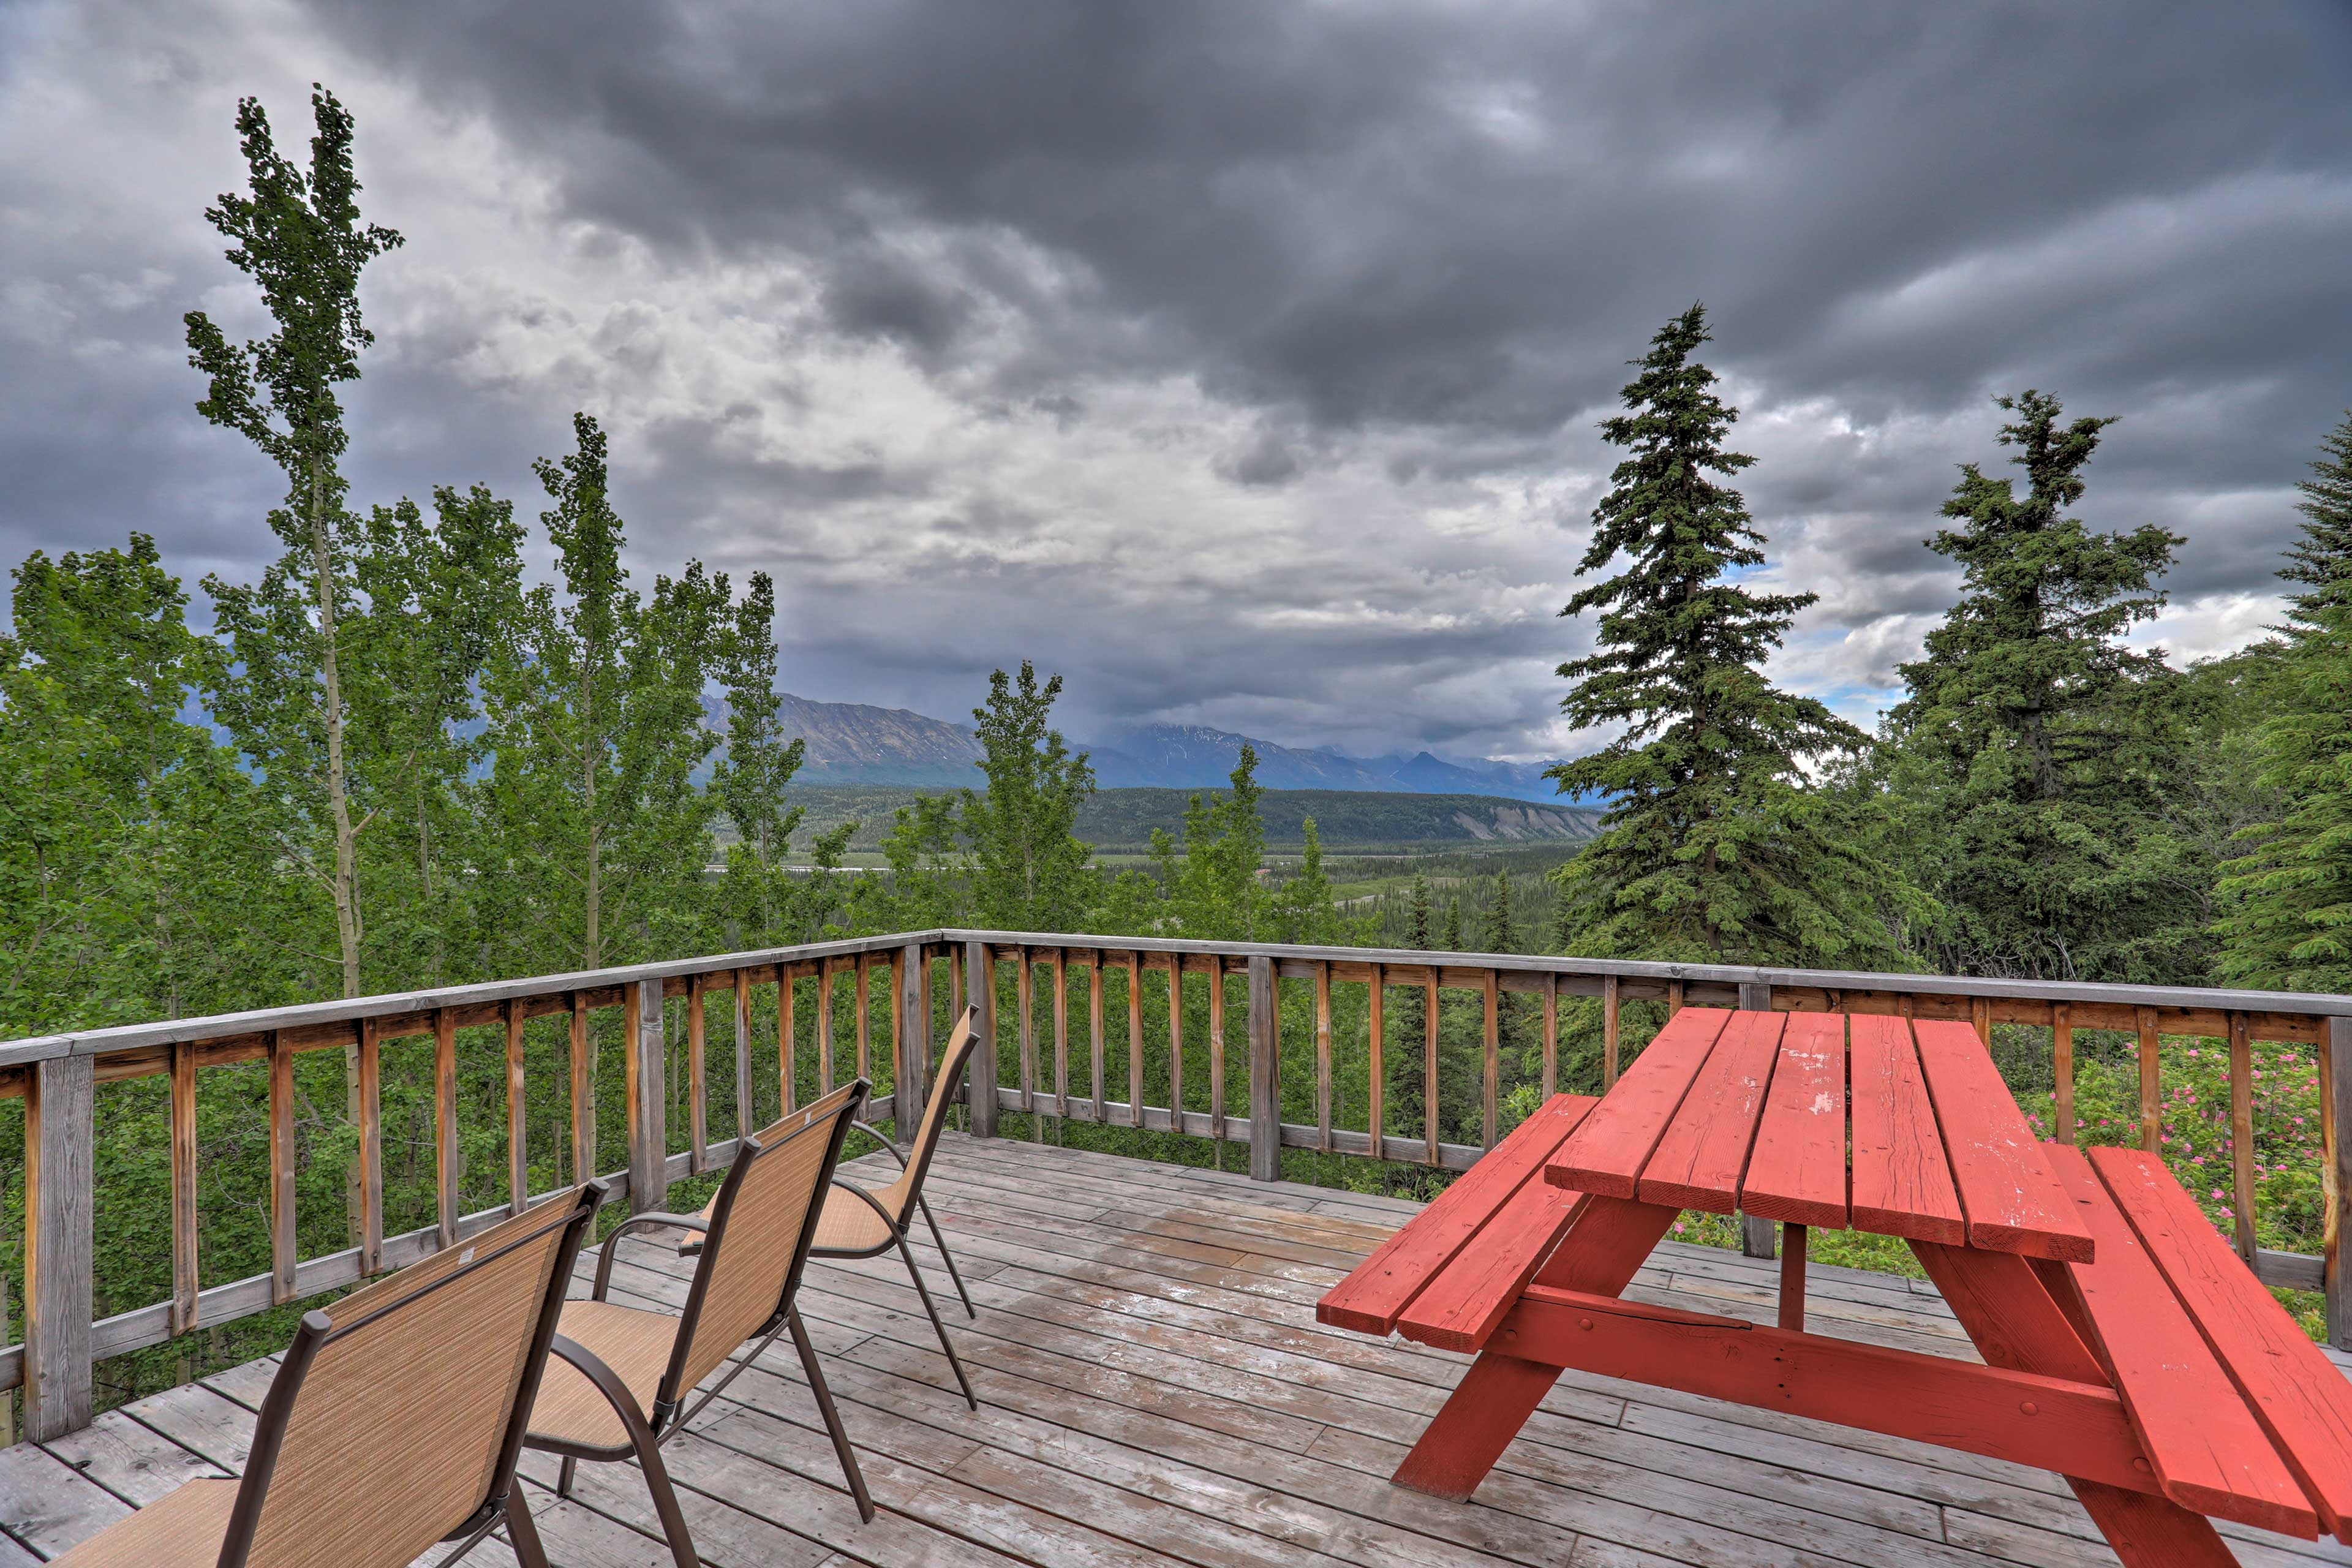 Step outside and breathe the fresh mountain air!